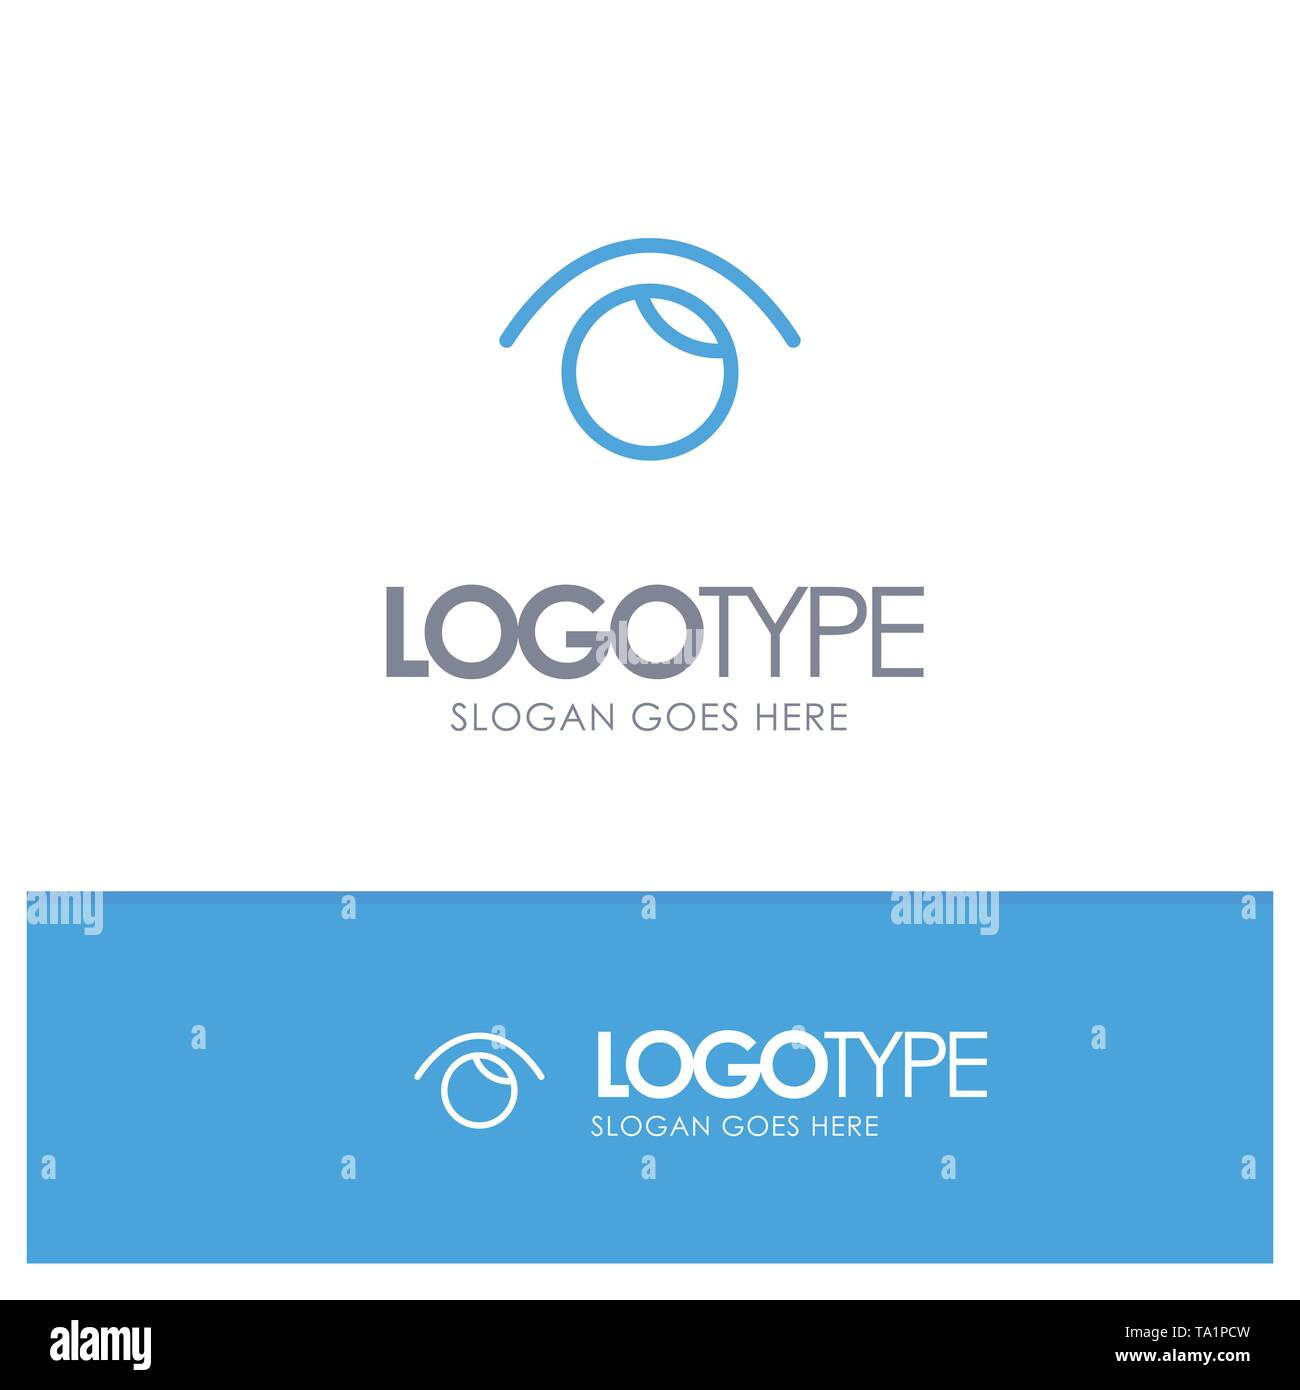 Eye, View, Watch, Twitter Blue outLine Logo with place for tagline - Stock Image